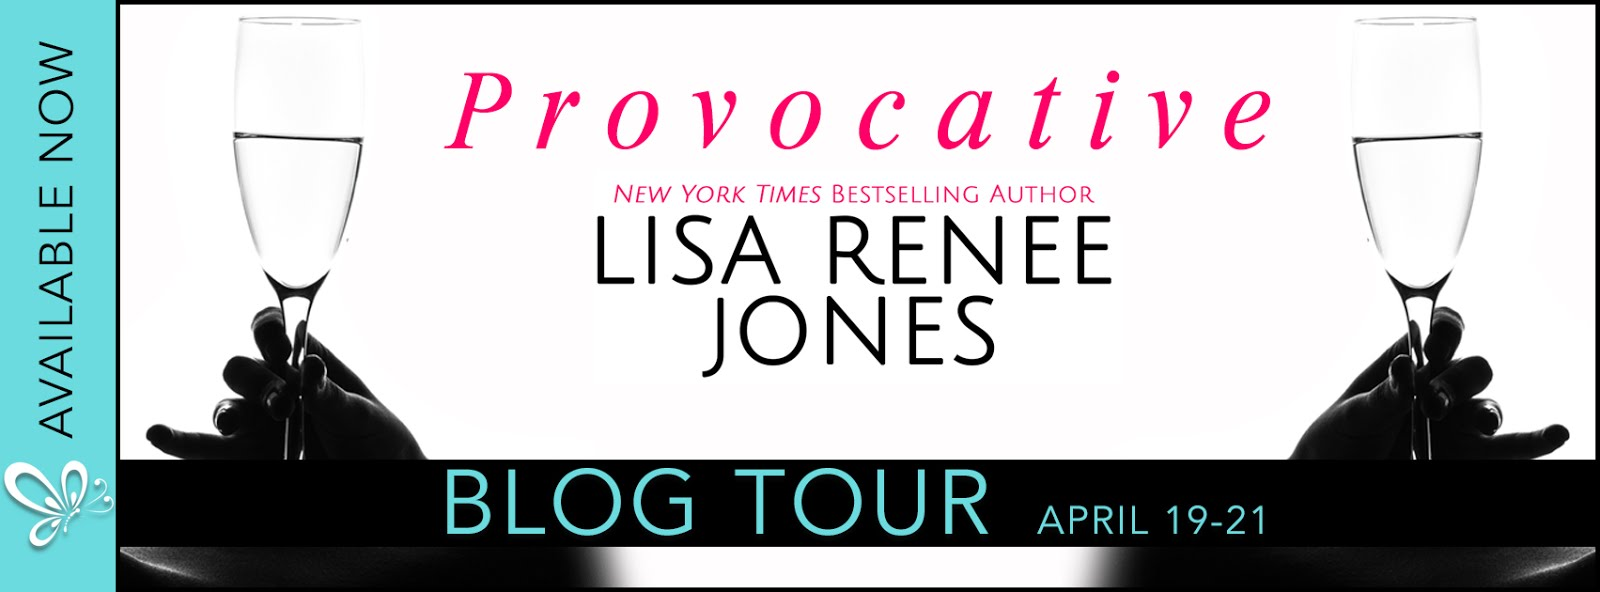 """Provocative"" by Lisa Renee Jones"